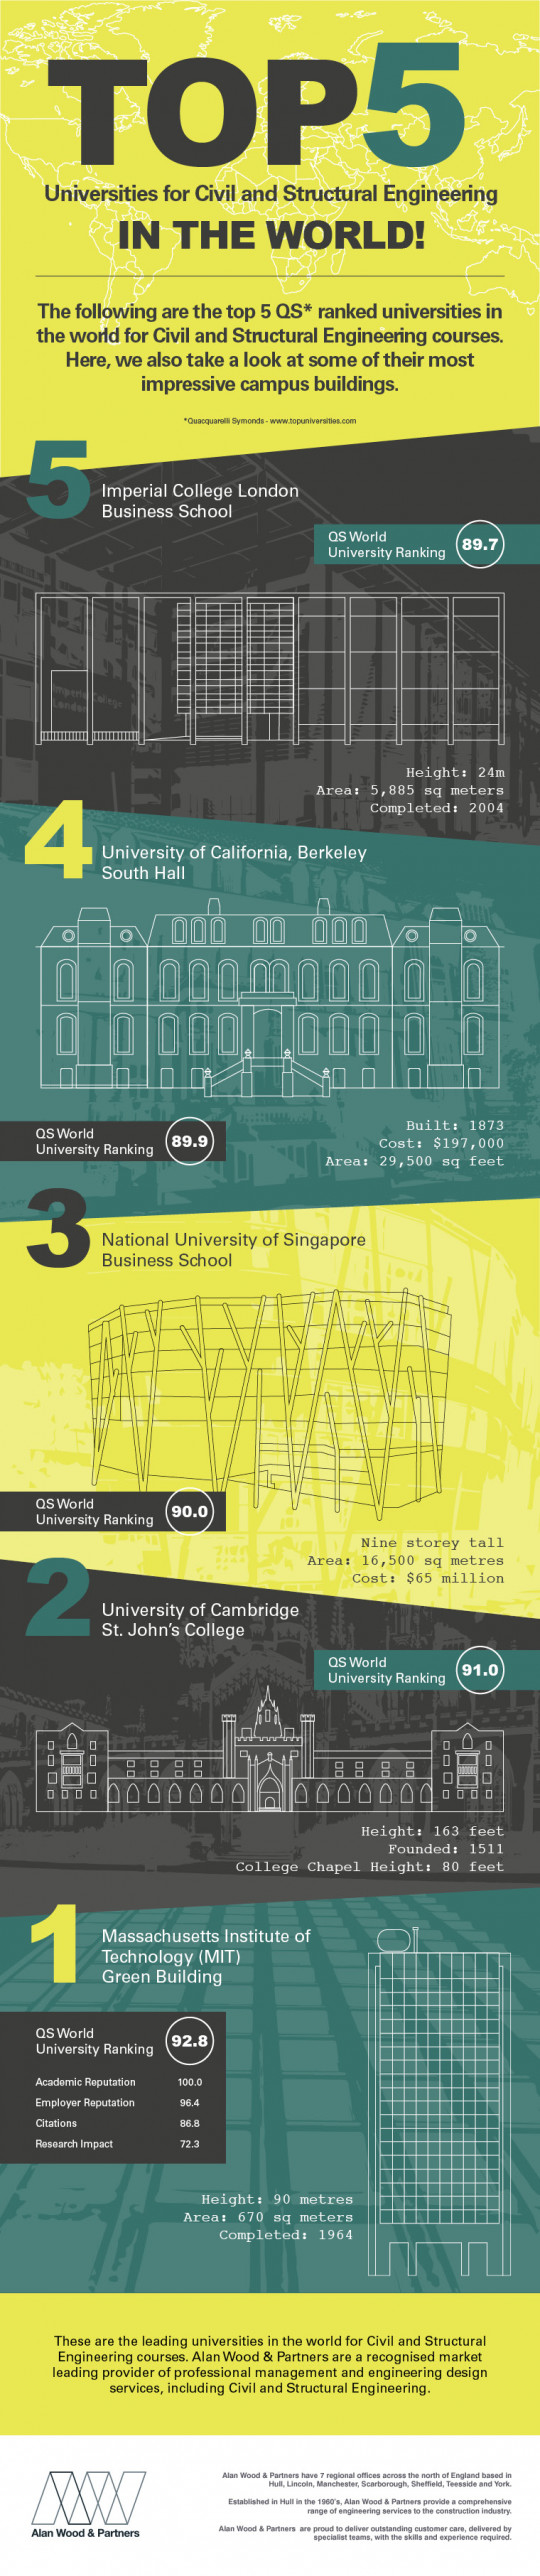 The Top 5 Universities for Structural and Civil Engineering In The World